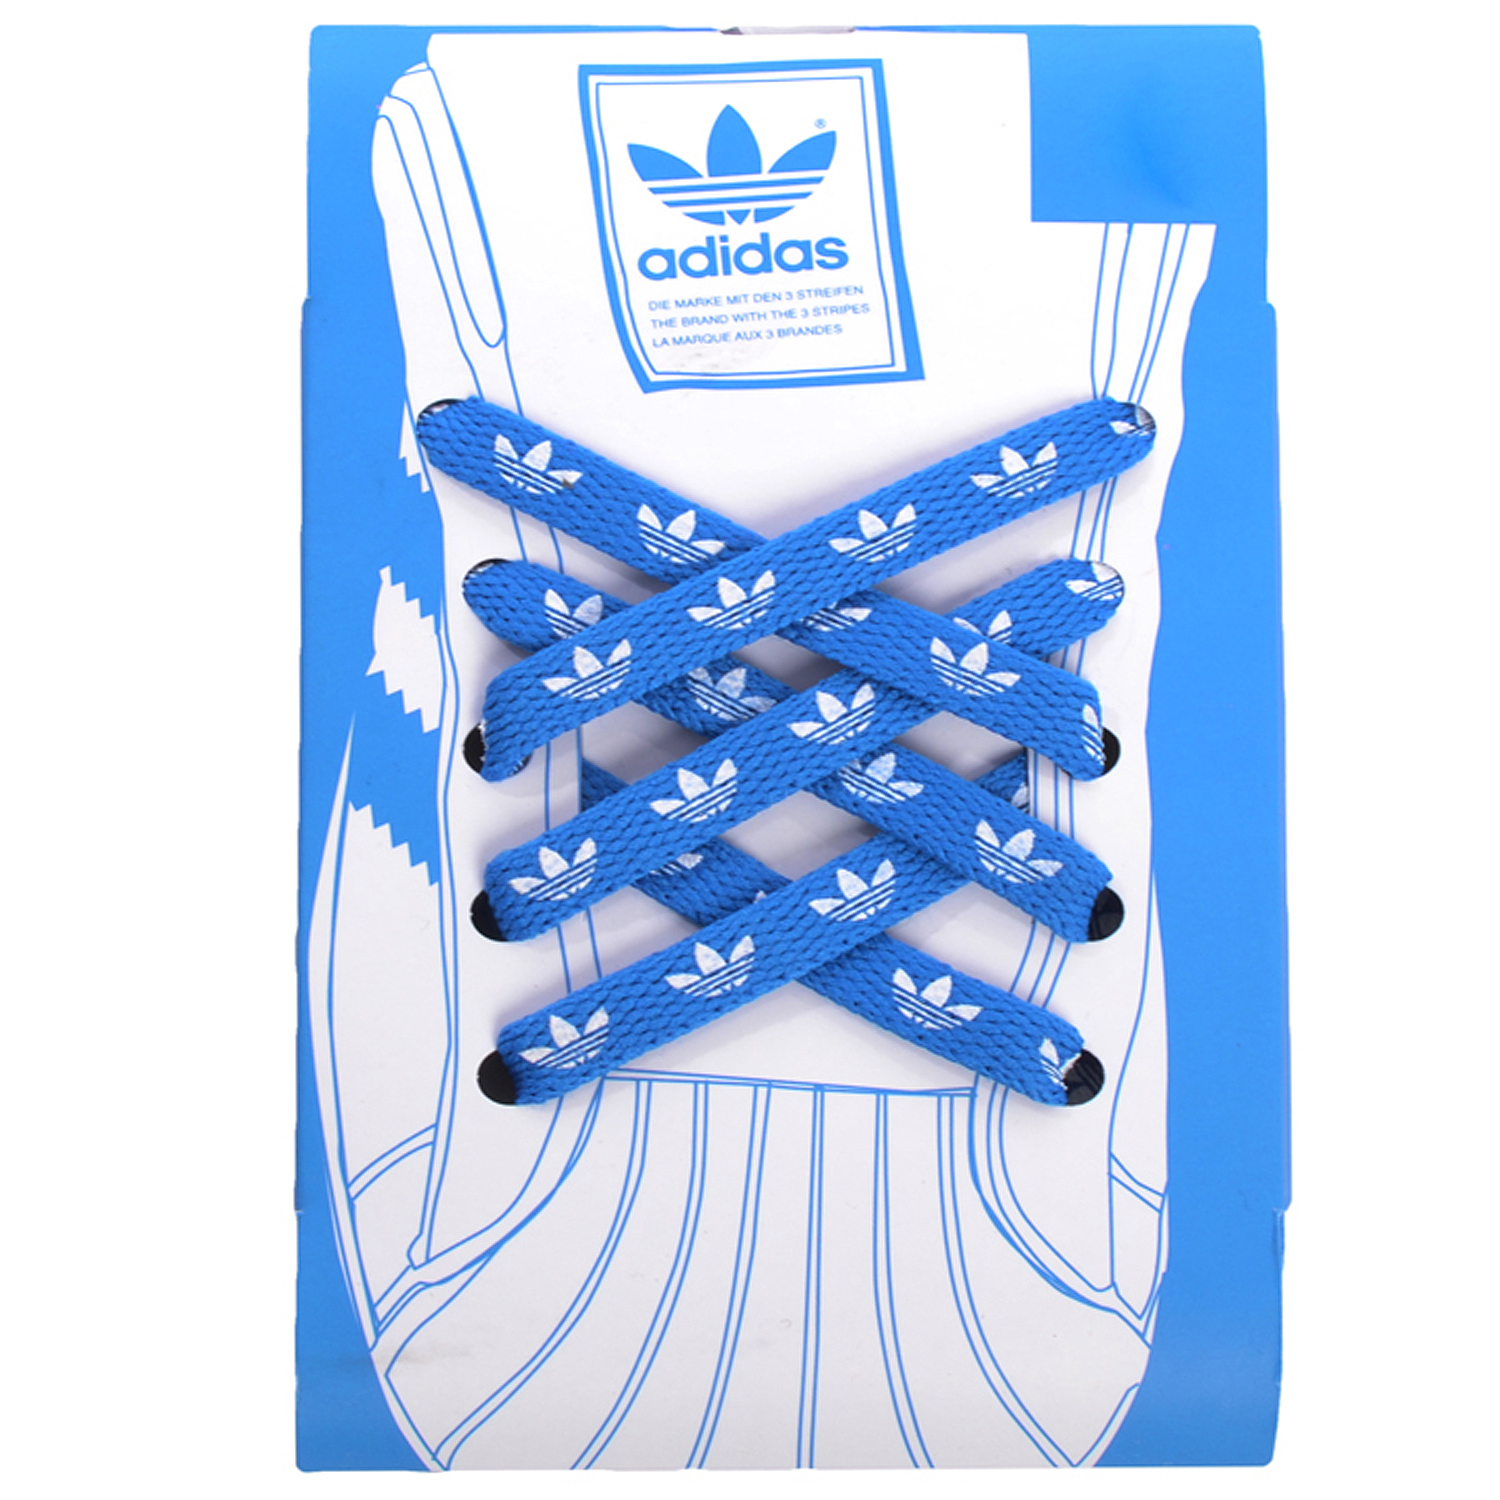 Adidas Shoes Lace Sides